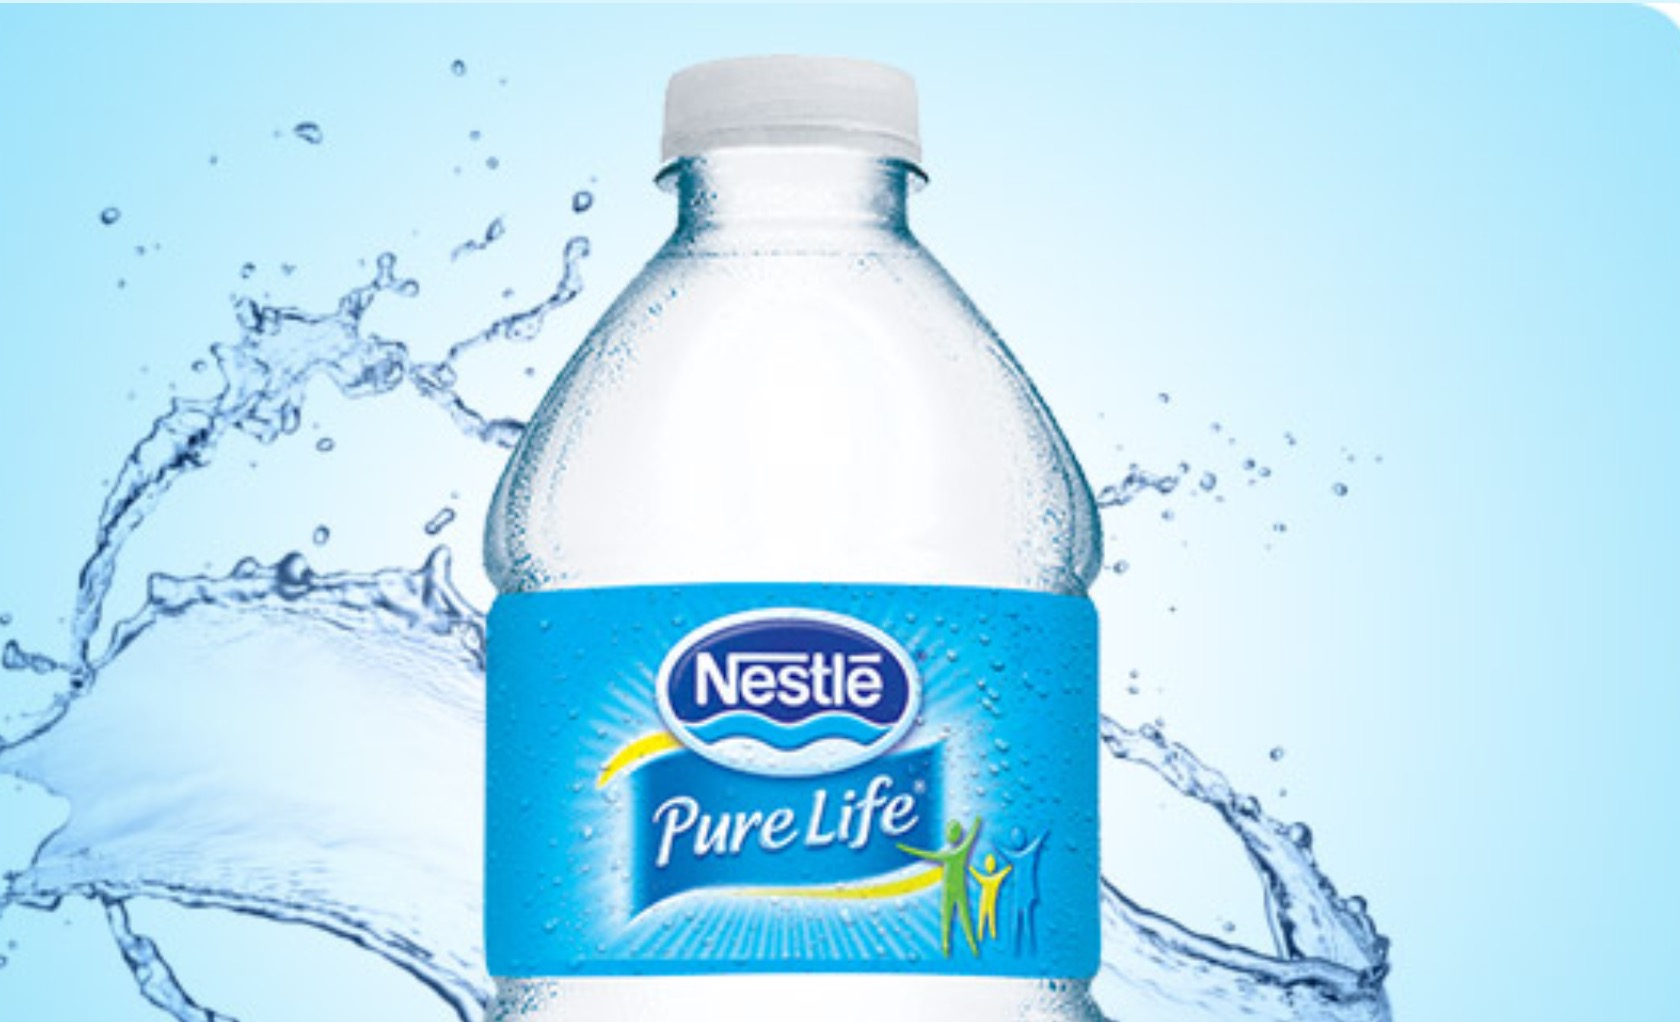 Green Packaging Innovation From Nestlé Pure Life